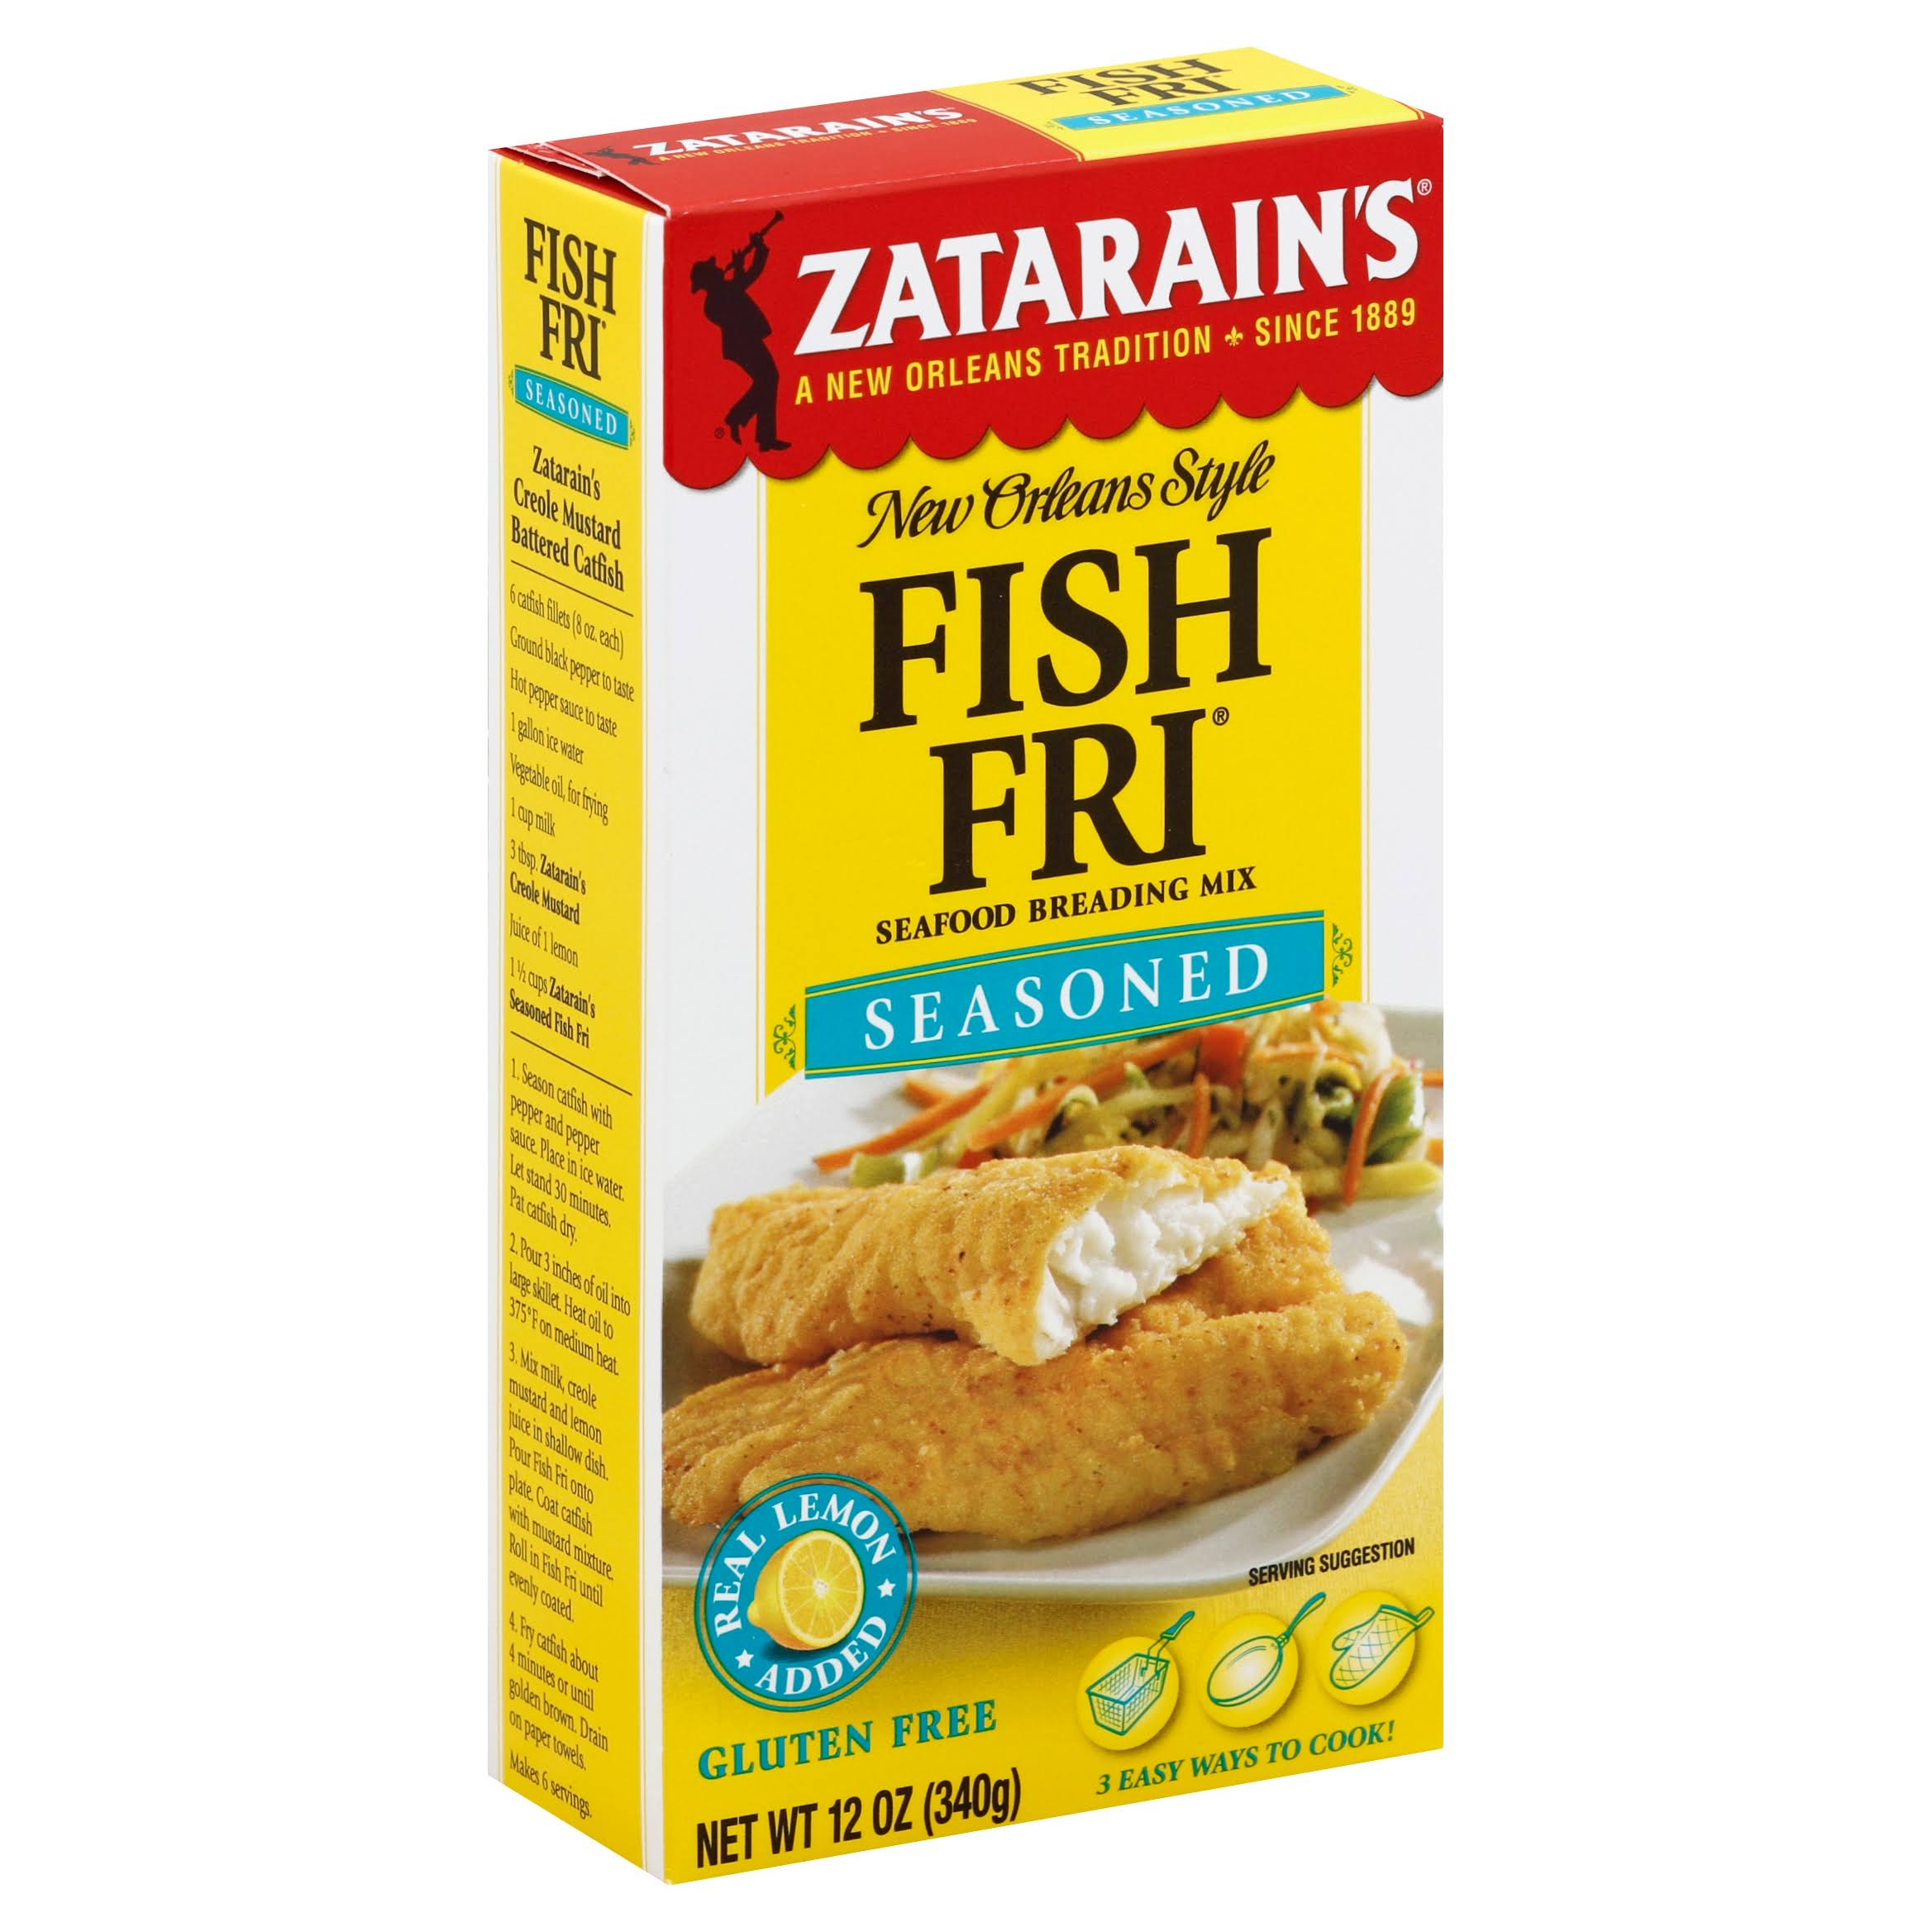 Zatarain's Fish Fri Seasoned Seafood Breading Mix - 12oz, Real Lemon Added